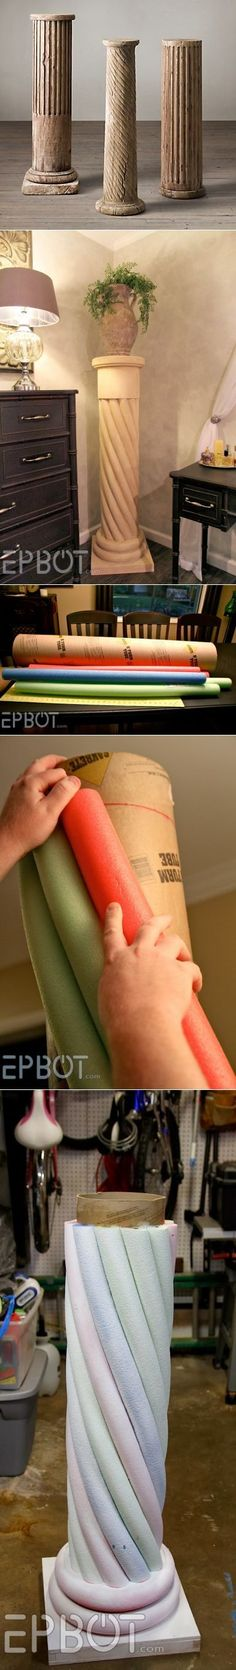 EPBOT: Make Your Own 'Stone' Decorative Column. With Pool Noodles! \/ Columns under flowers // Инна Жилина Cardboard Tubes, Cardboard Crafts, Paper Crafts, Fun Crafts, Diy And Crafts, Arts And Crafts, Cardboard Furniture, Diy Projects To Try, Diy Gifts